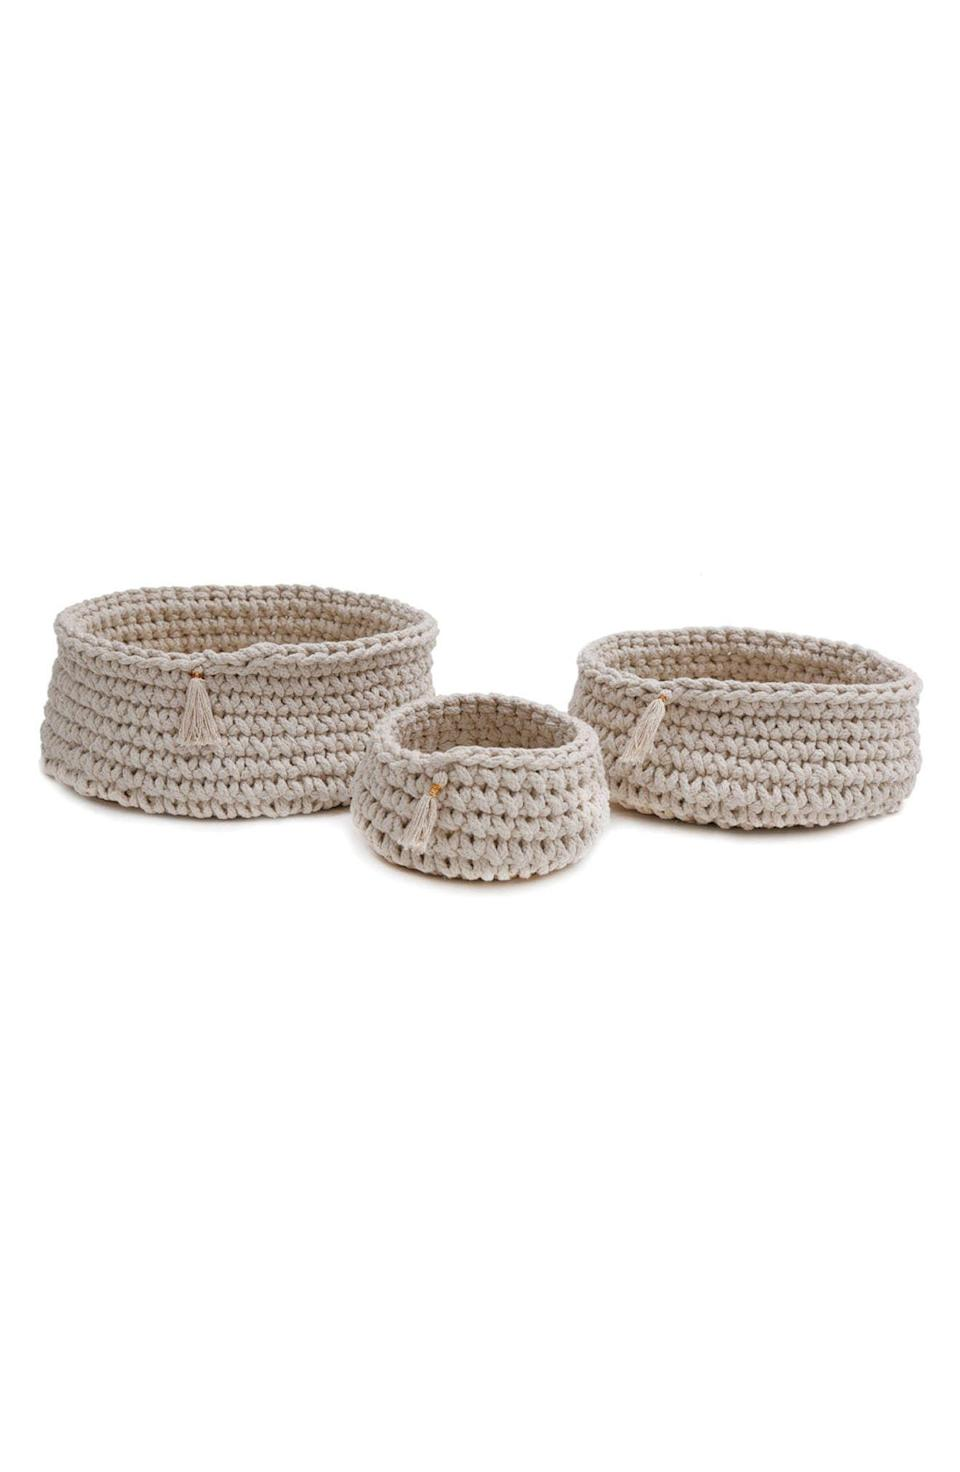 """<p><strong>POM POM AT HOME</strong></p><p>nordstrom.com</p><p><a href=""""https://go.redirectingat.com?id=74968X1596630&url=https%3A%2F%2Fwww.nordstrom.com%2Fs%2Fpom-pom-at-home-baya-set-of-3-baskets%2F4720134&sref=https%3A%2F%2Fwww.goodhousekeeping.com%2Flife%2Fmoney%2Fg36944754%2Fnordstrom-anniversary-sale-2021%2F"""" rel=""""nofollow noopener"""" target=""""_blank"""" data-ylk=""""slk:Shop Now"""" class=""""link rapid-noclick-resp"""">Shop Now</a></p><p><del>$161.00</del> $107.90 <strong>(33% off)</strong></p><p>Store all your favorite knick-knacks in these tassel-embellished, handwoven baskets from Los Angeles-based company Pom Pom at Home. </p>"""